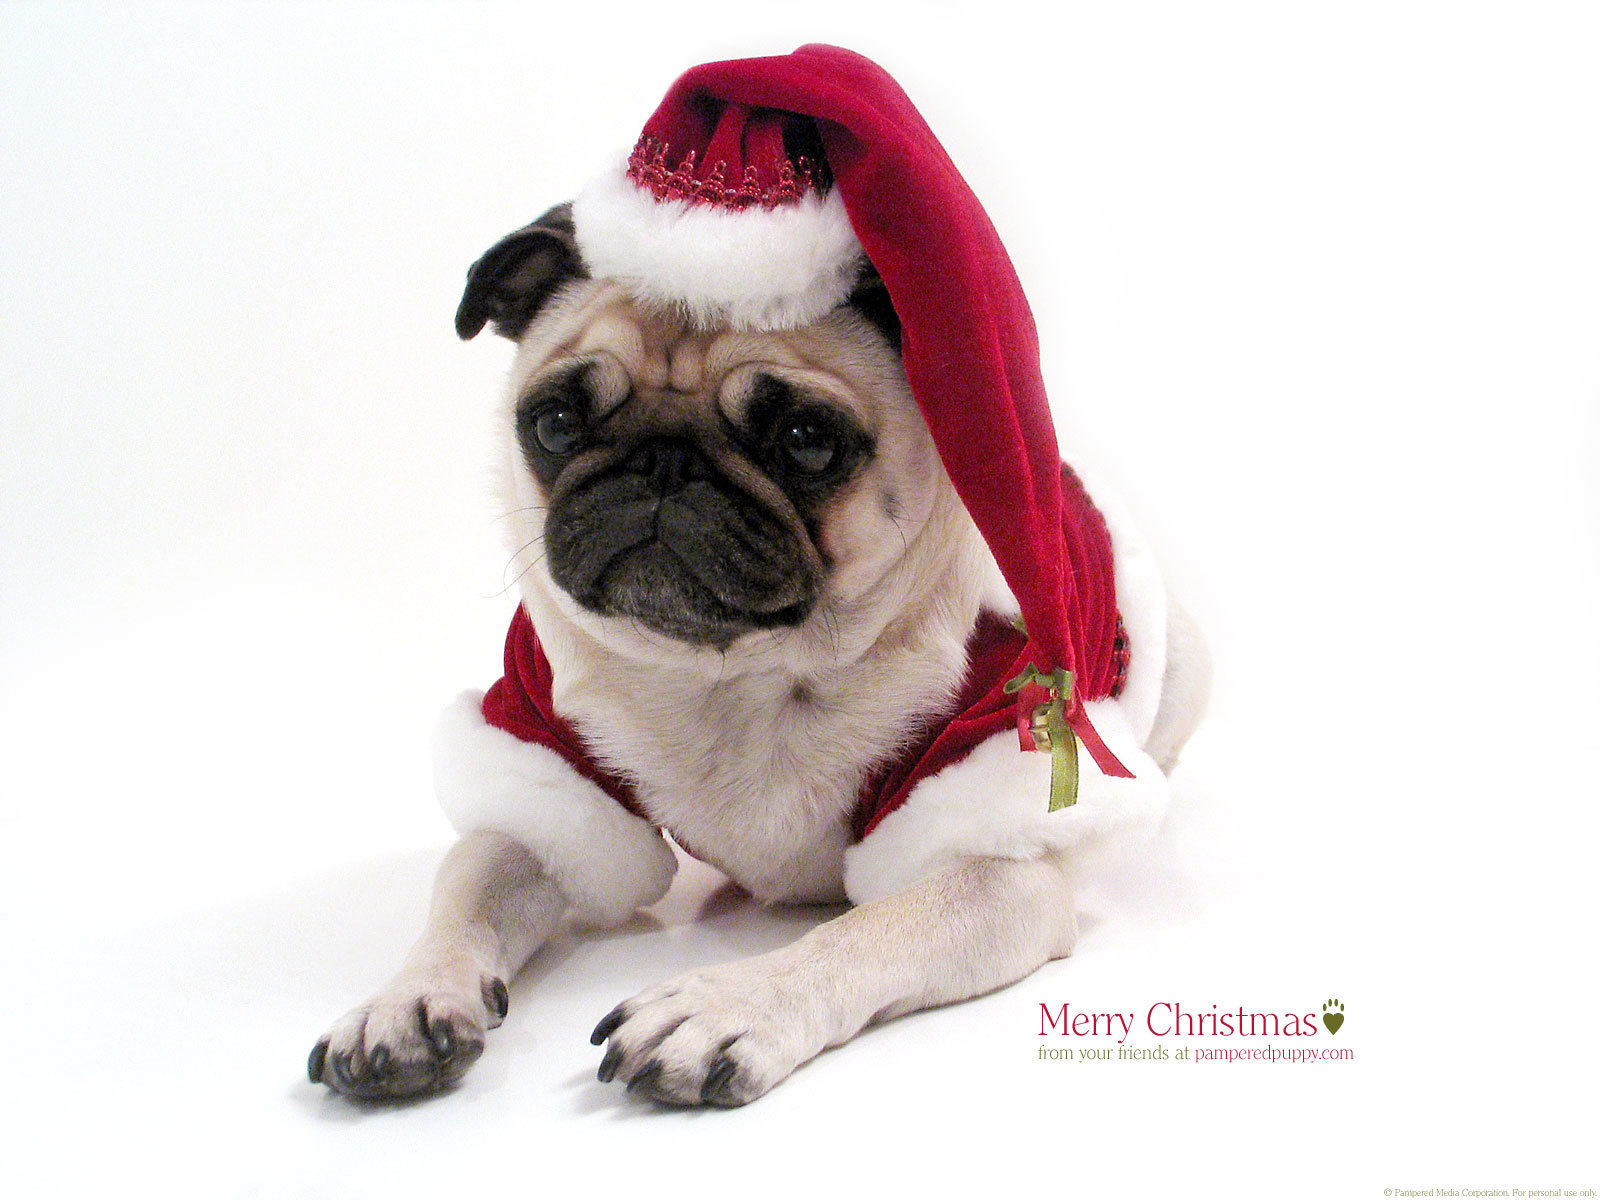 Funny Pugs Images Christmas Pug HD Wallpaper And